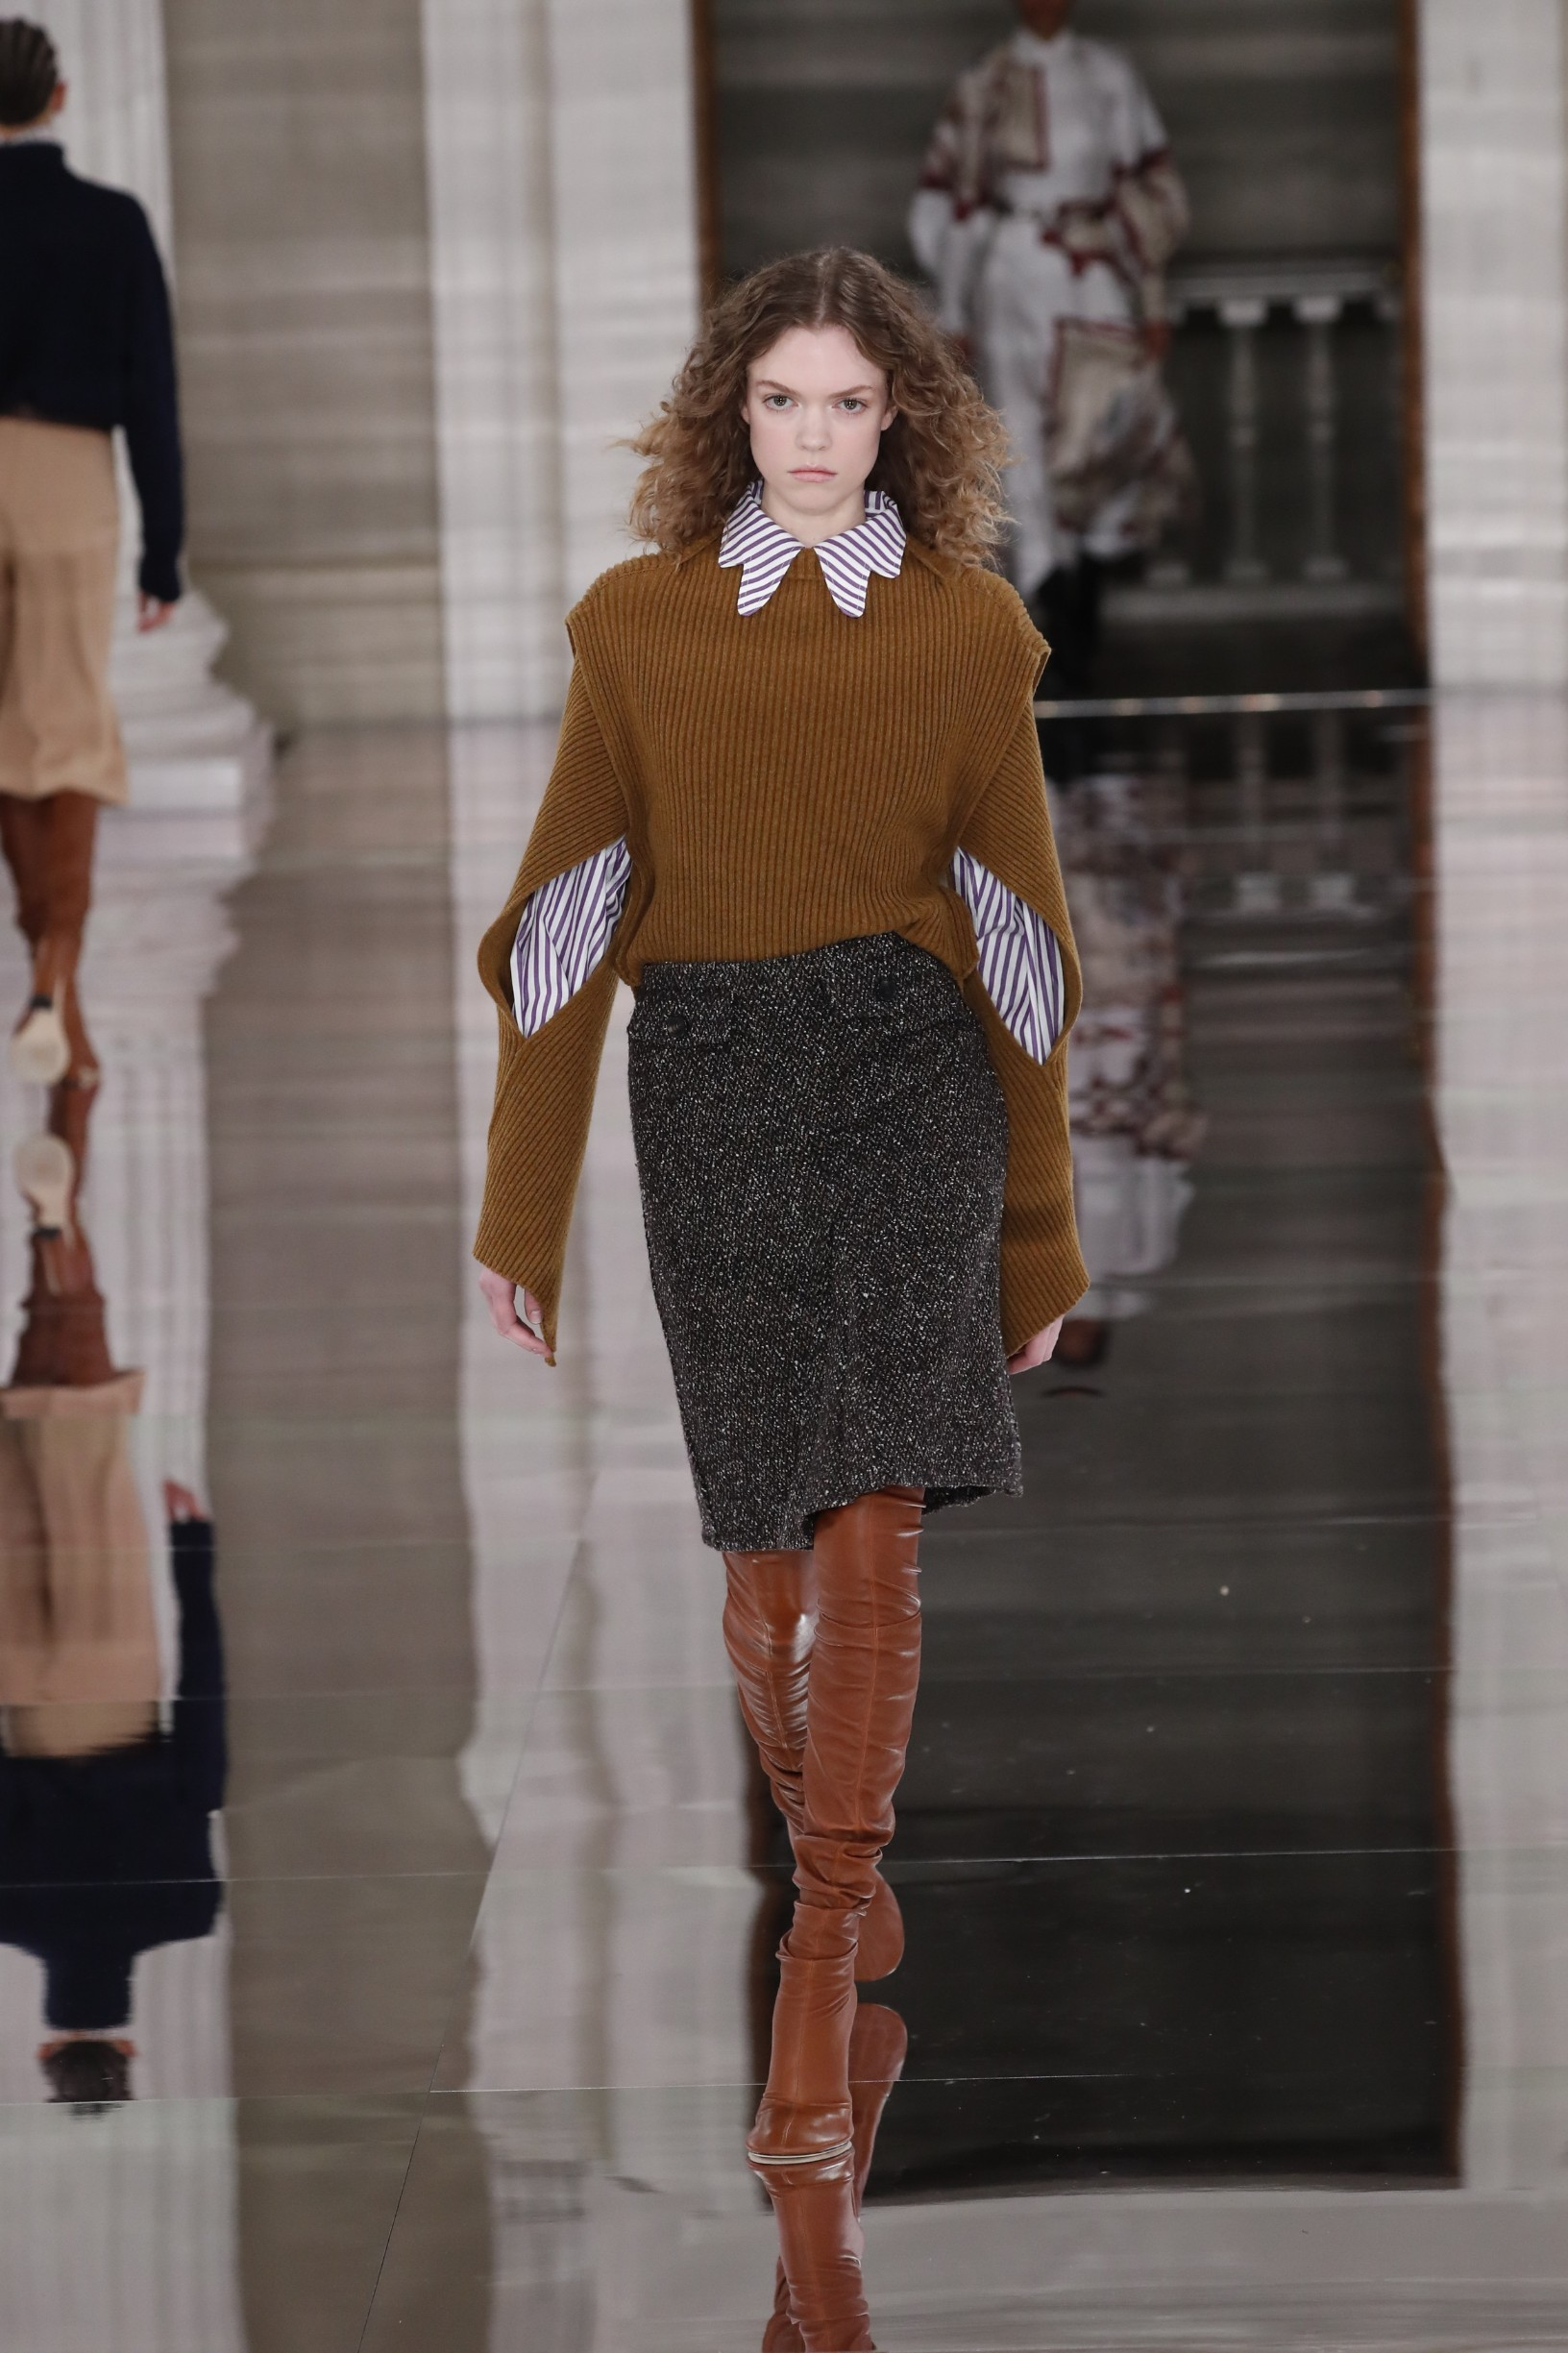 Victoria Beckham Fall/Winter 2020/21 London Fashion Week,  England, UK in February 2020., Image: 499304067, License: Rights-managed, Restrictions: , Model Release: no, Credit line: Rick Gold / Capital pictures / Profimedia